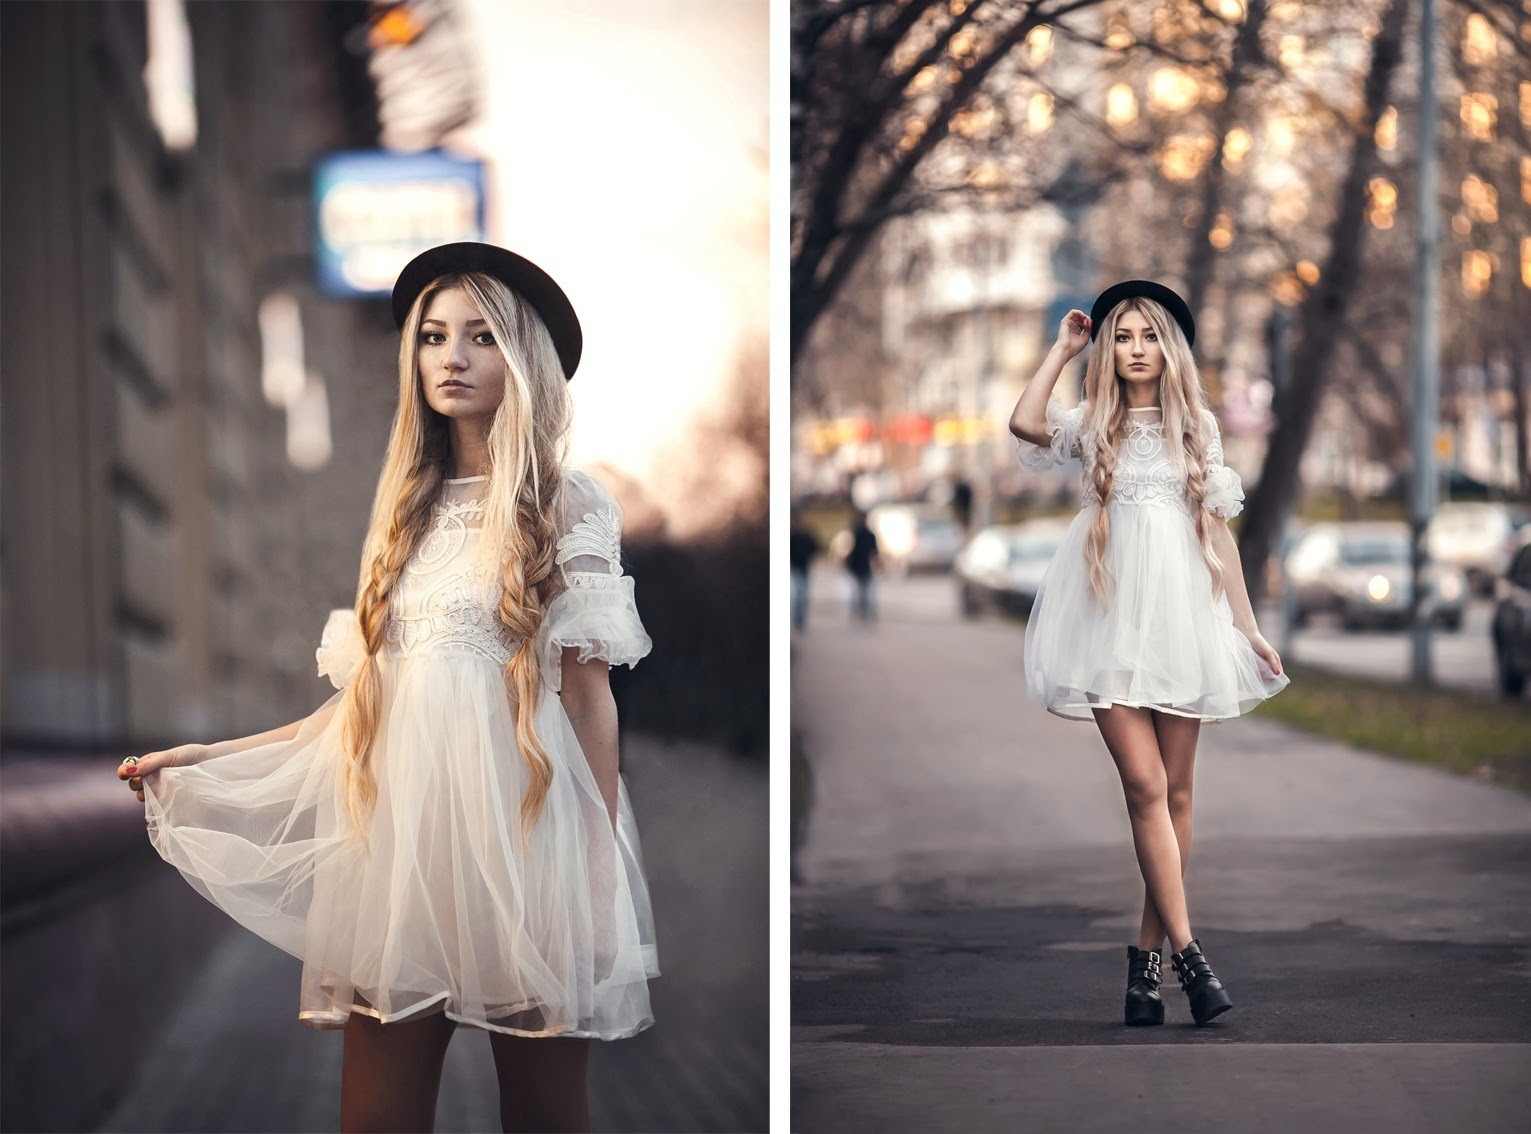 White dress boots - Women S White Tulle Party Dress Black Leather Lace Up Flat Boots Black Hat White Ring Women S Fashion